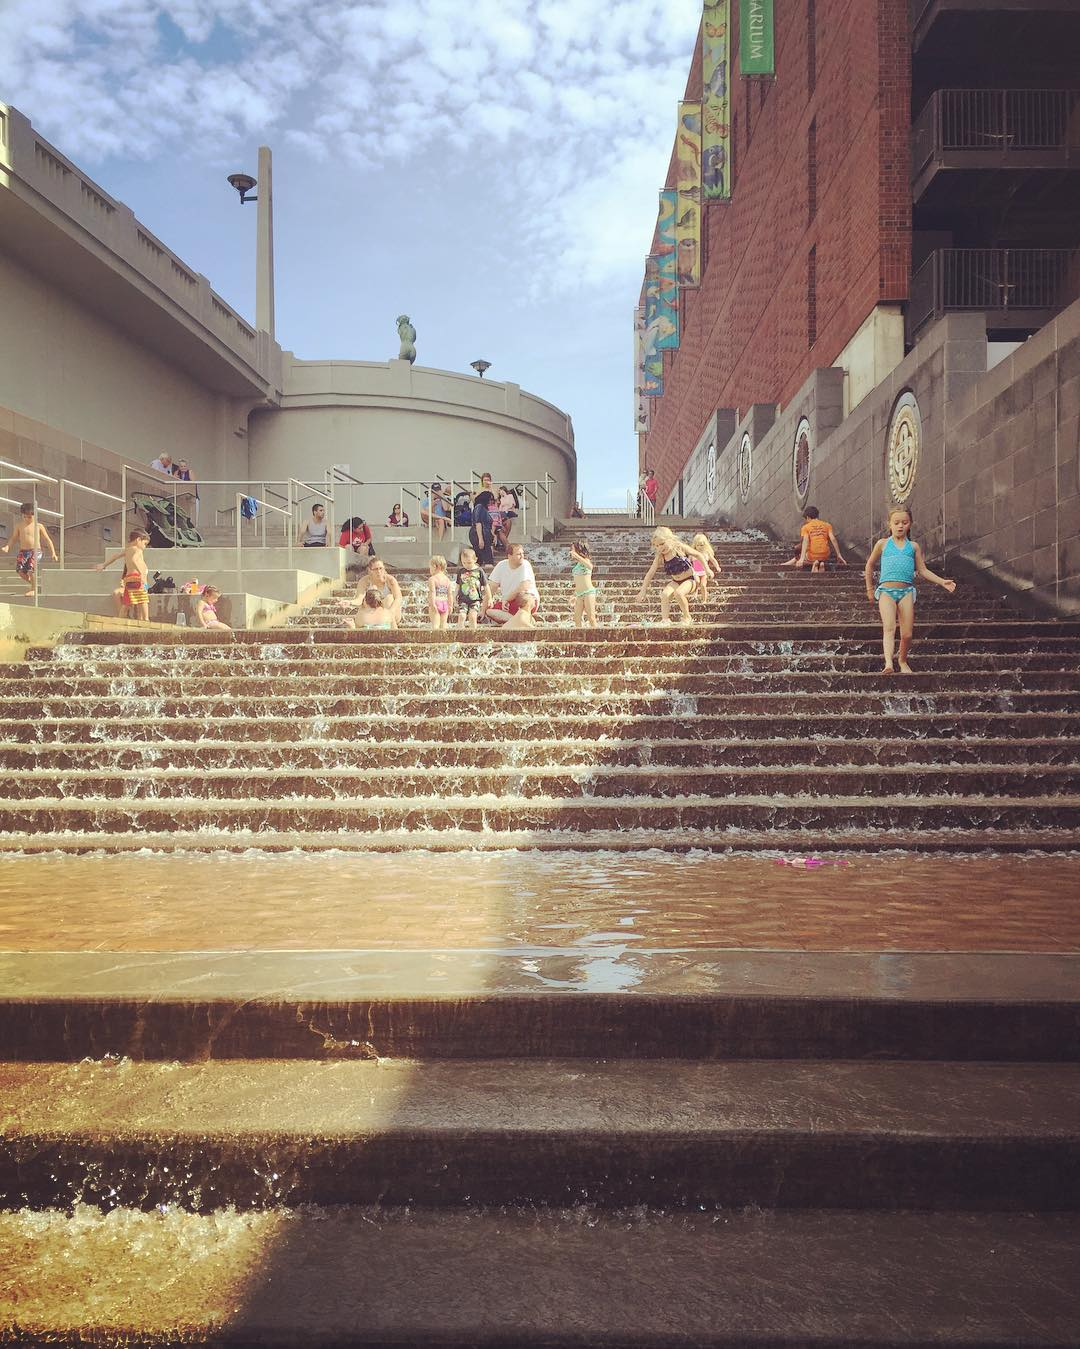 With out a doubt the most brilliant urban public art/water feature I've ever seen. 5 flights of waterfall stairs